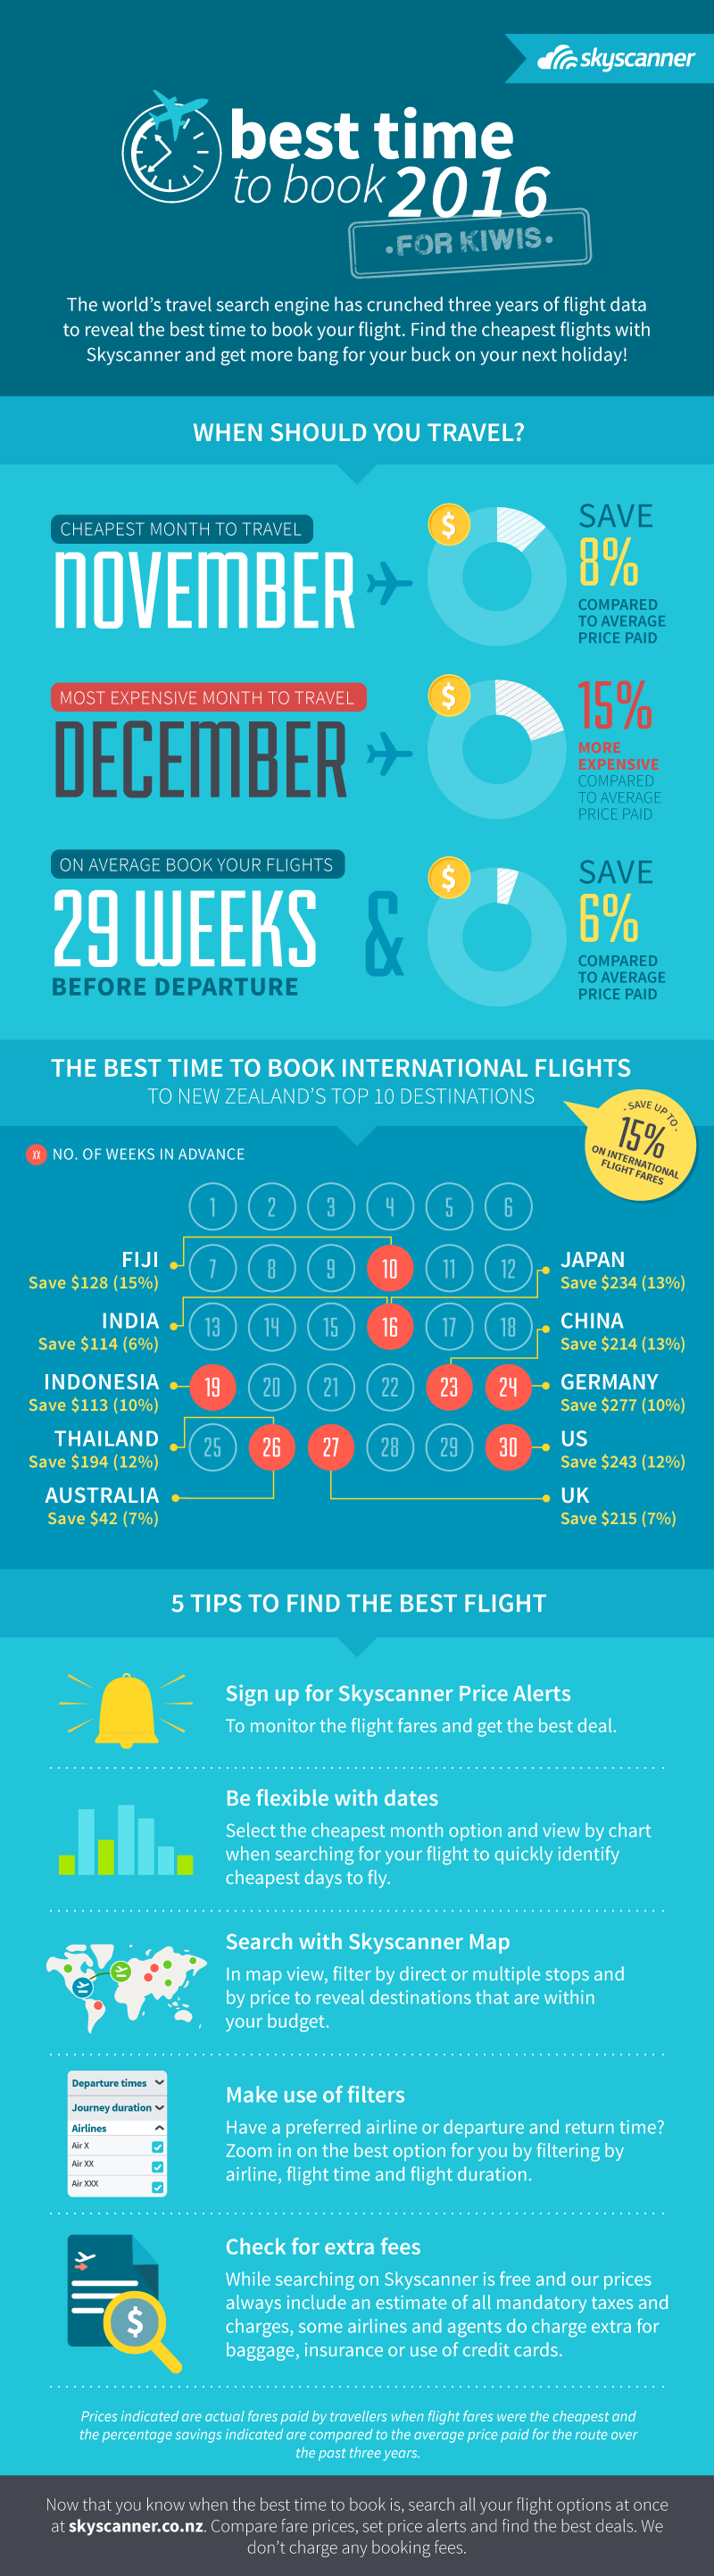 Best Time to Book Cheap Flights - Skyscanner New Zealand